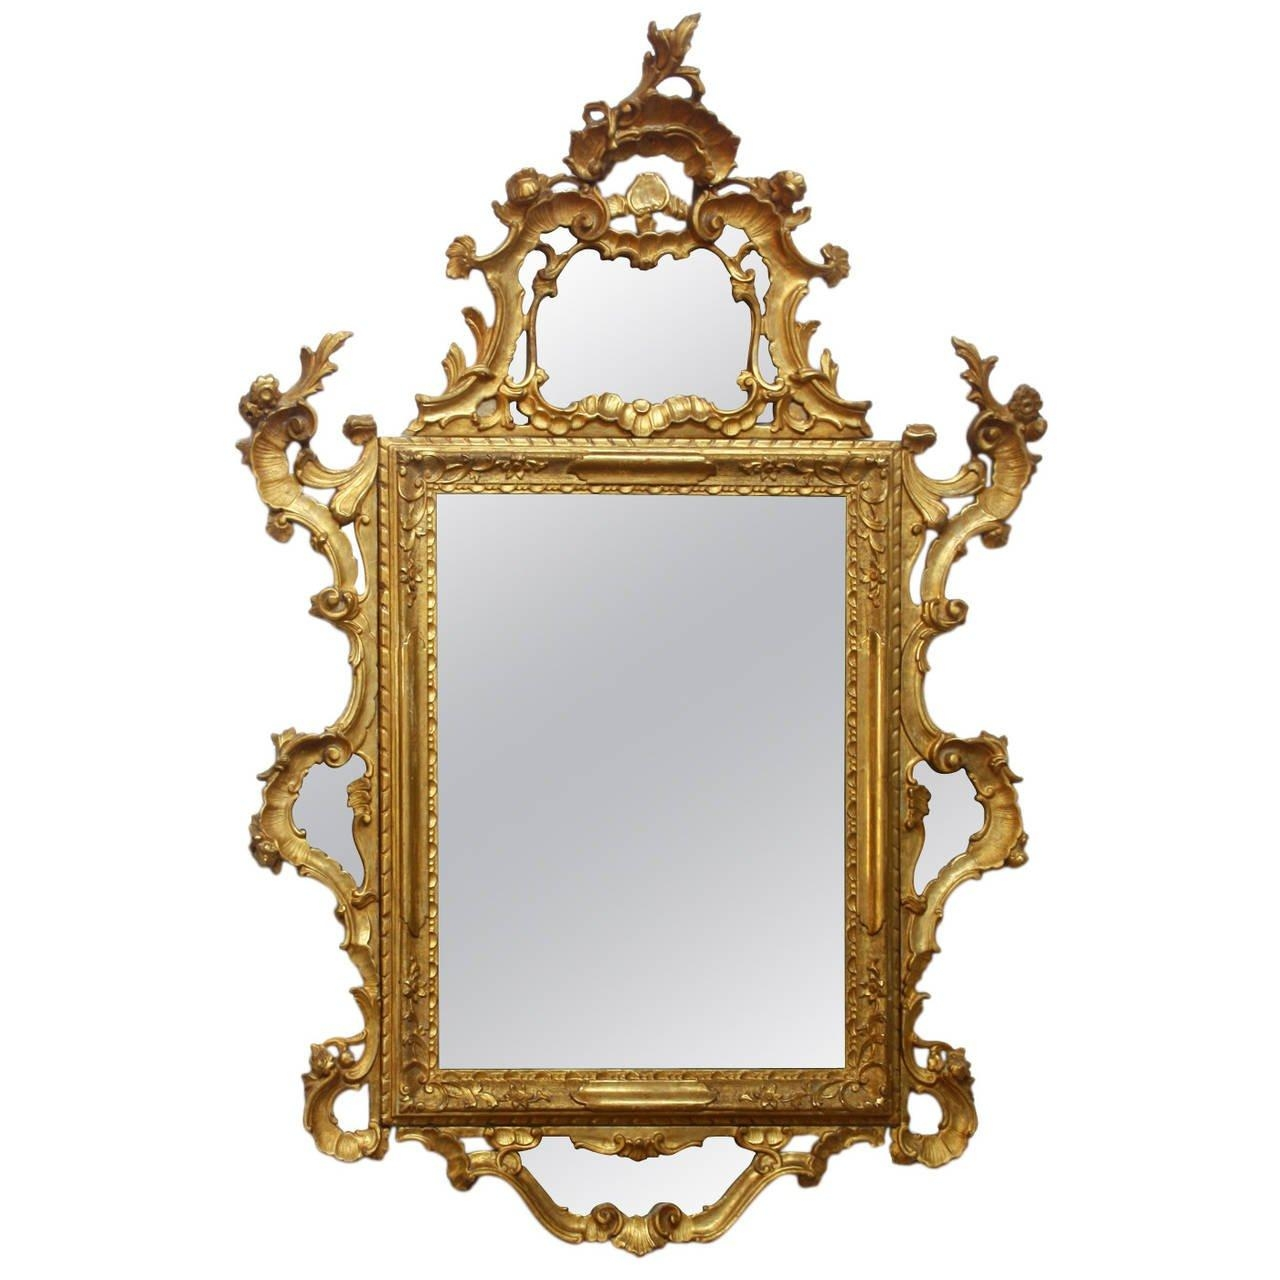 18Th Century Italian Rococo Mirror At 1Stdibs Inside Roccoco Mirror (Image 2 of 20)